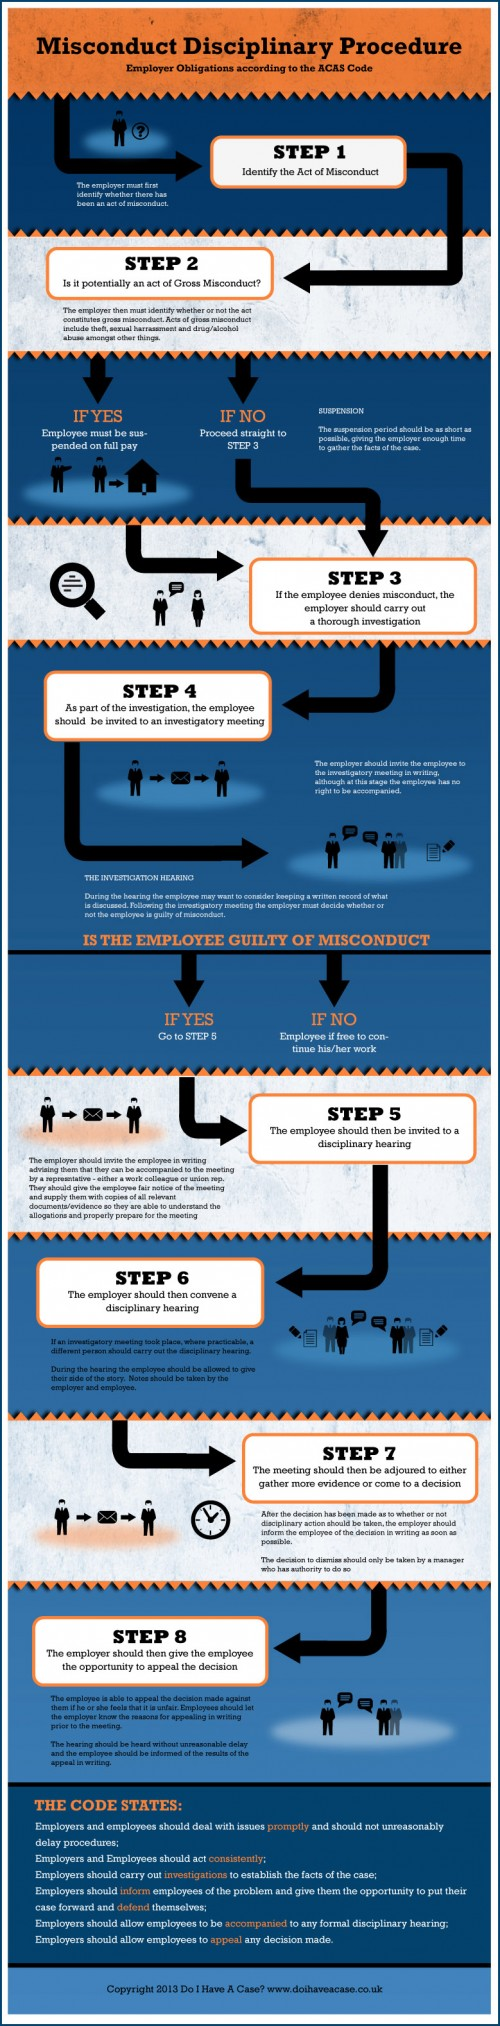 Infographic - Misconduct Disciplinary Procedure - The ACAS Code